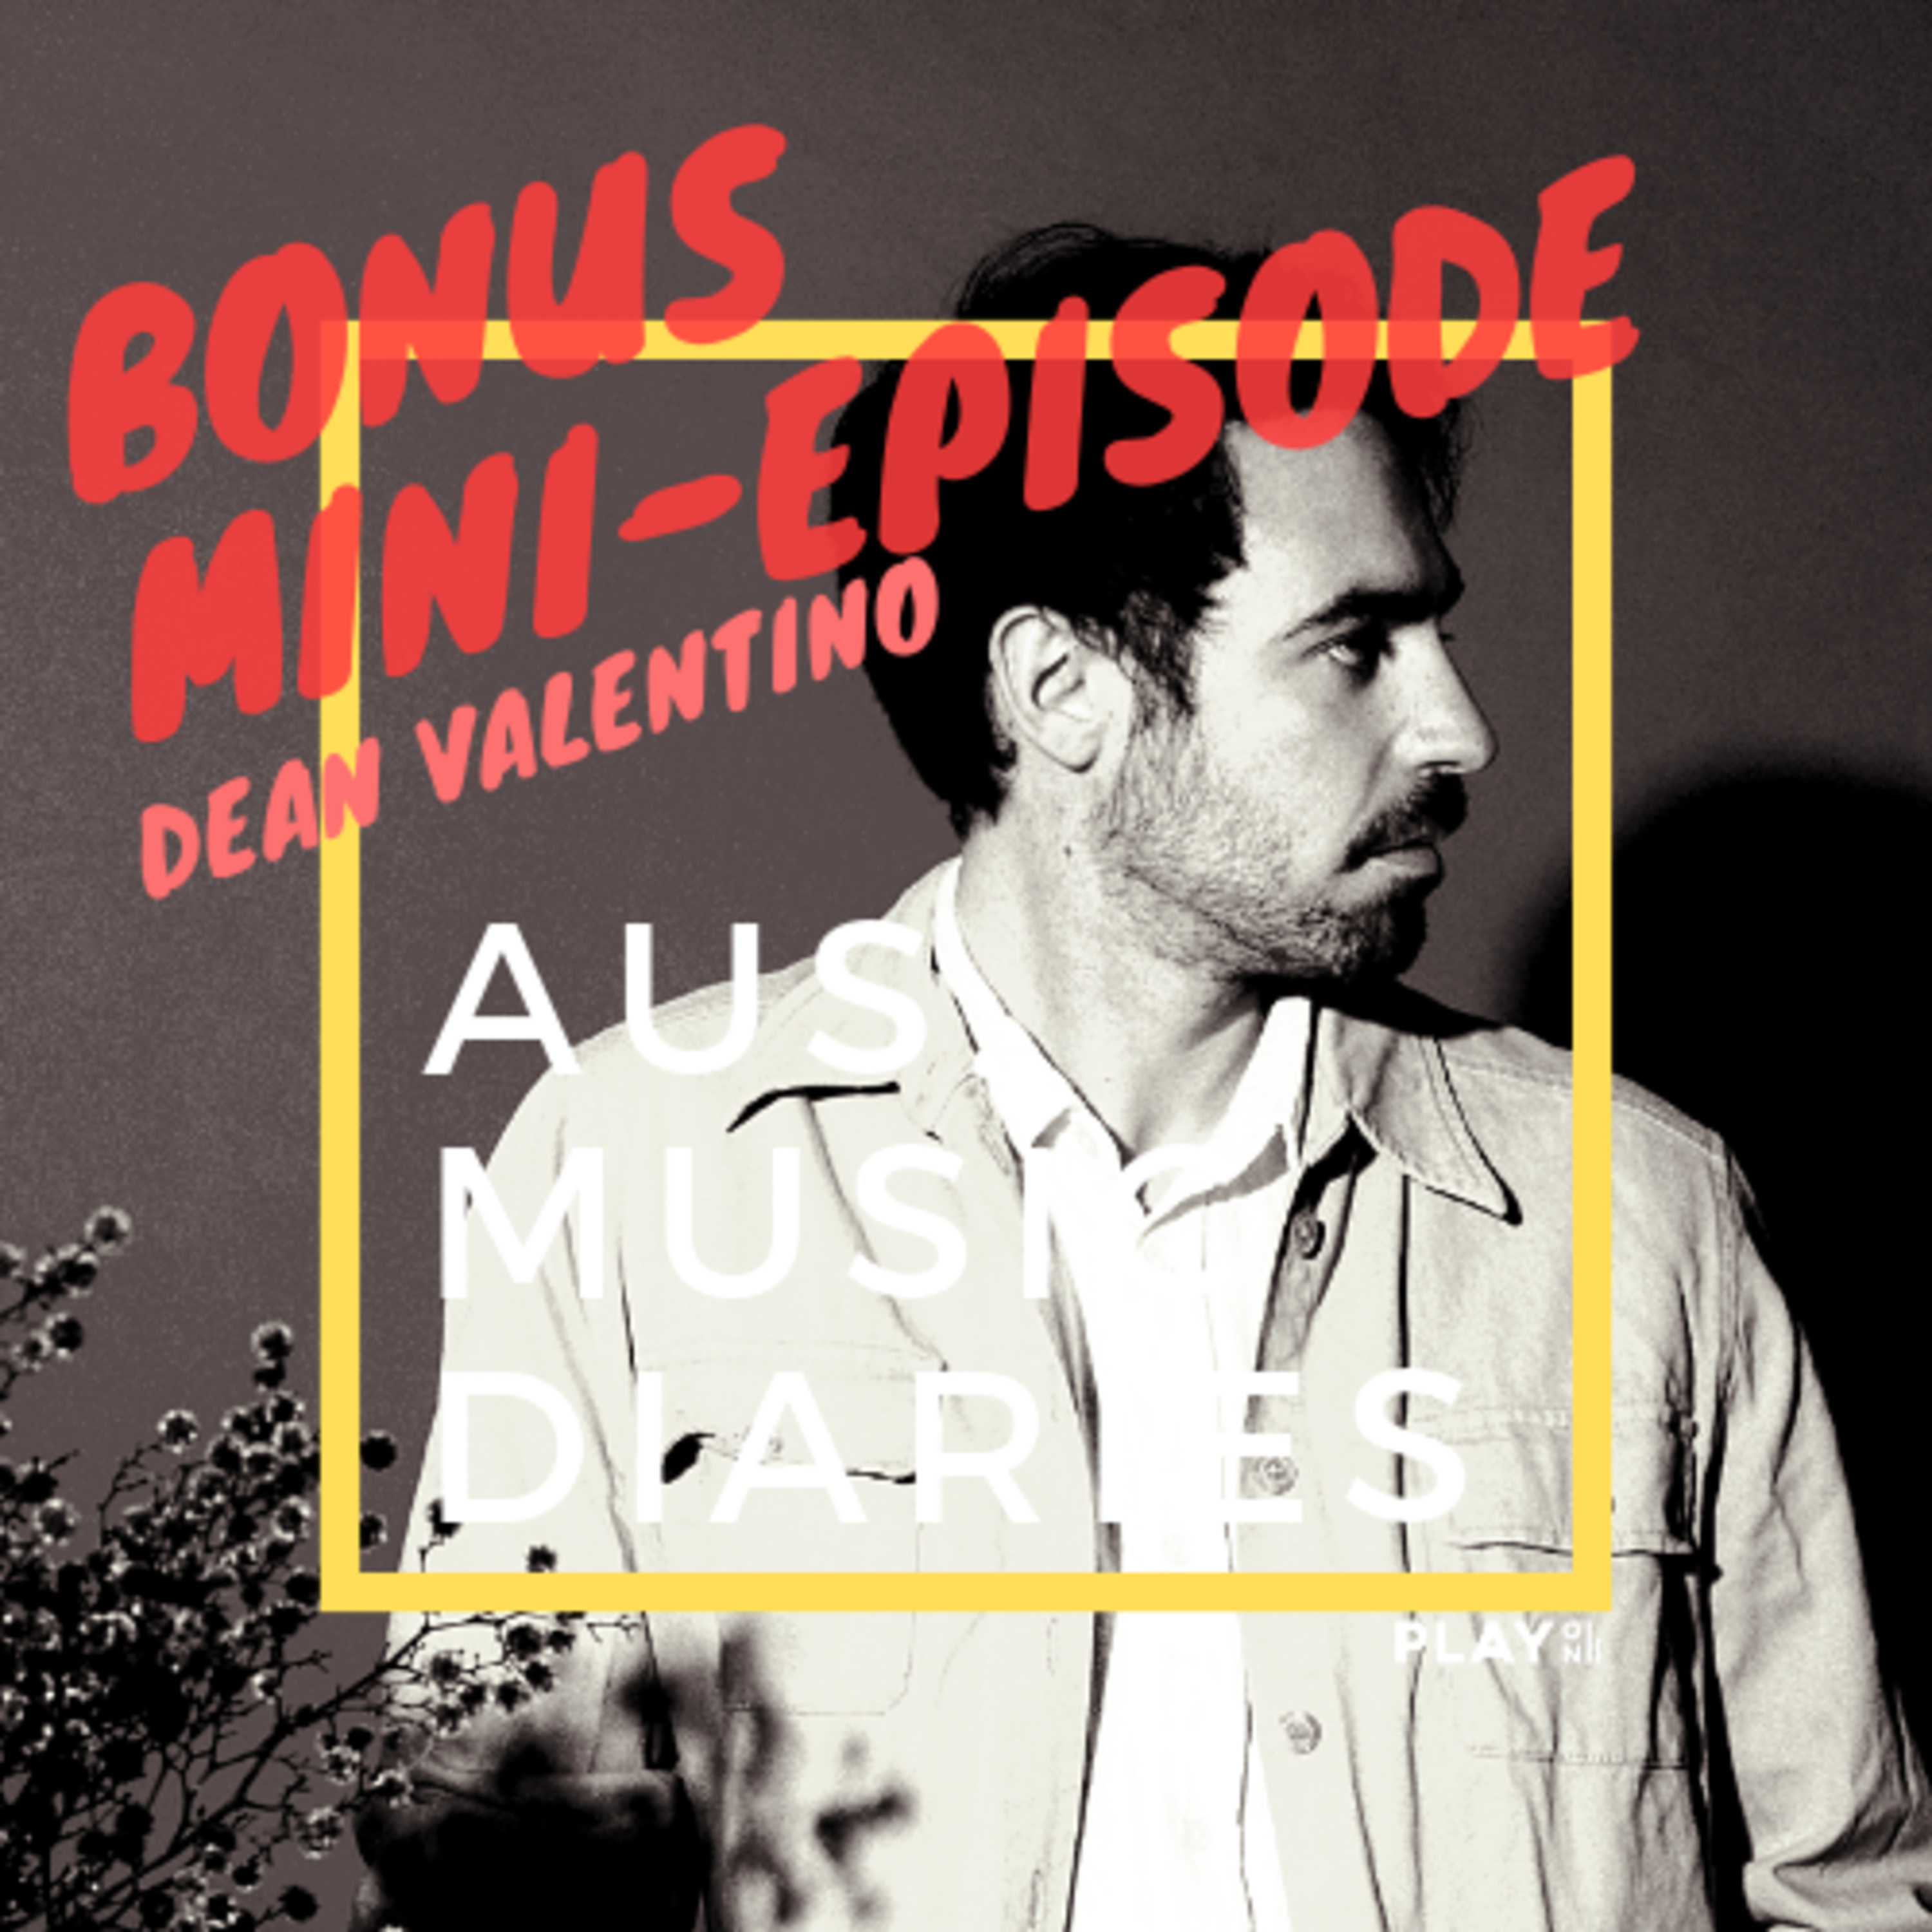 Bonus Guest Episode: Dean Valentino from Slowcoaching chats bare about Stella Donnelly